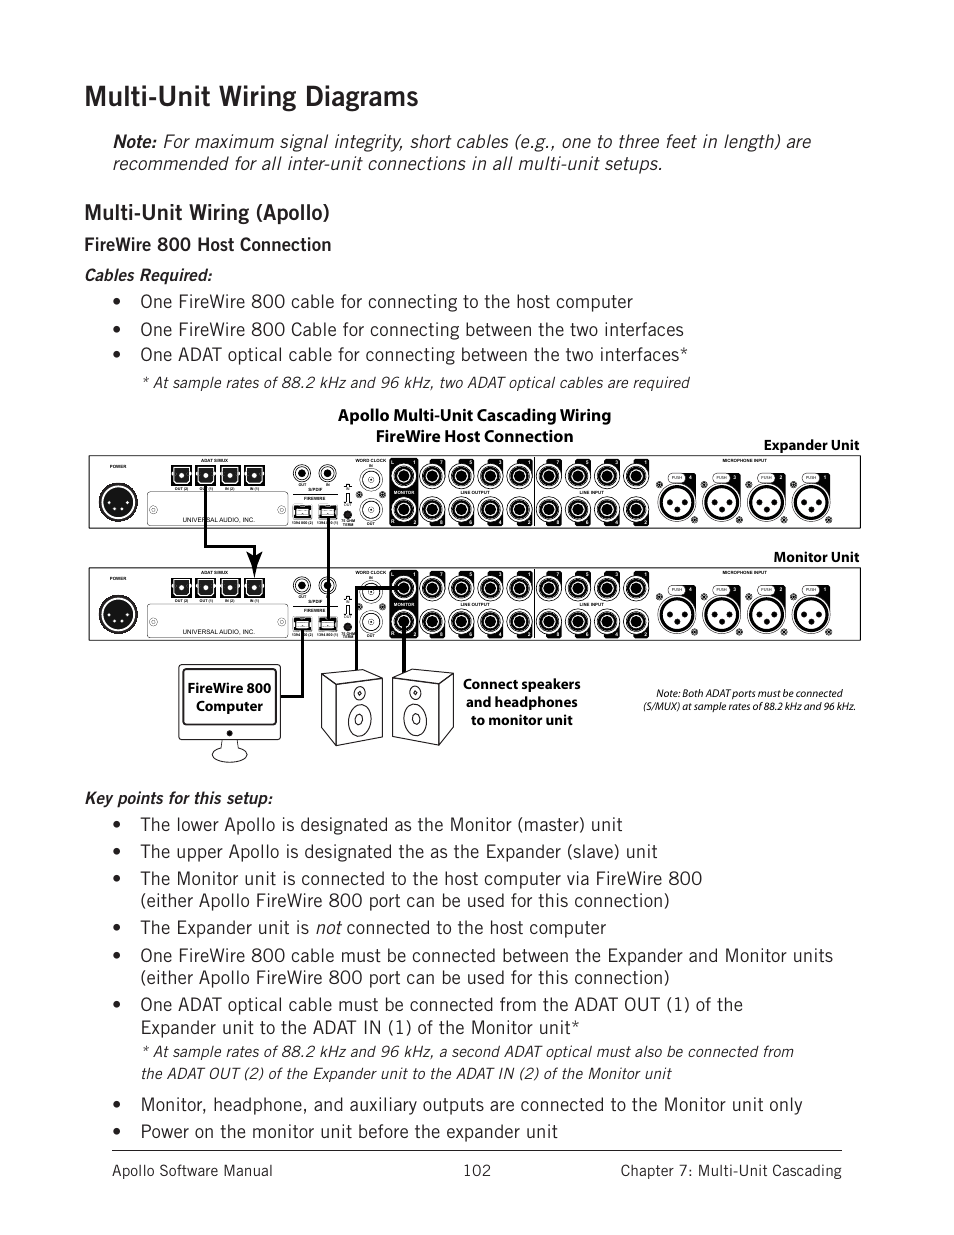 Multi Unit Wiring Diagrams Ware Setups Are In This Chapter Starting Design Software On Apollo Universal Audio User Manual Page 102